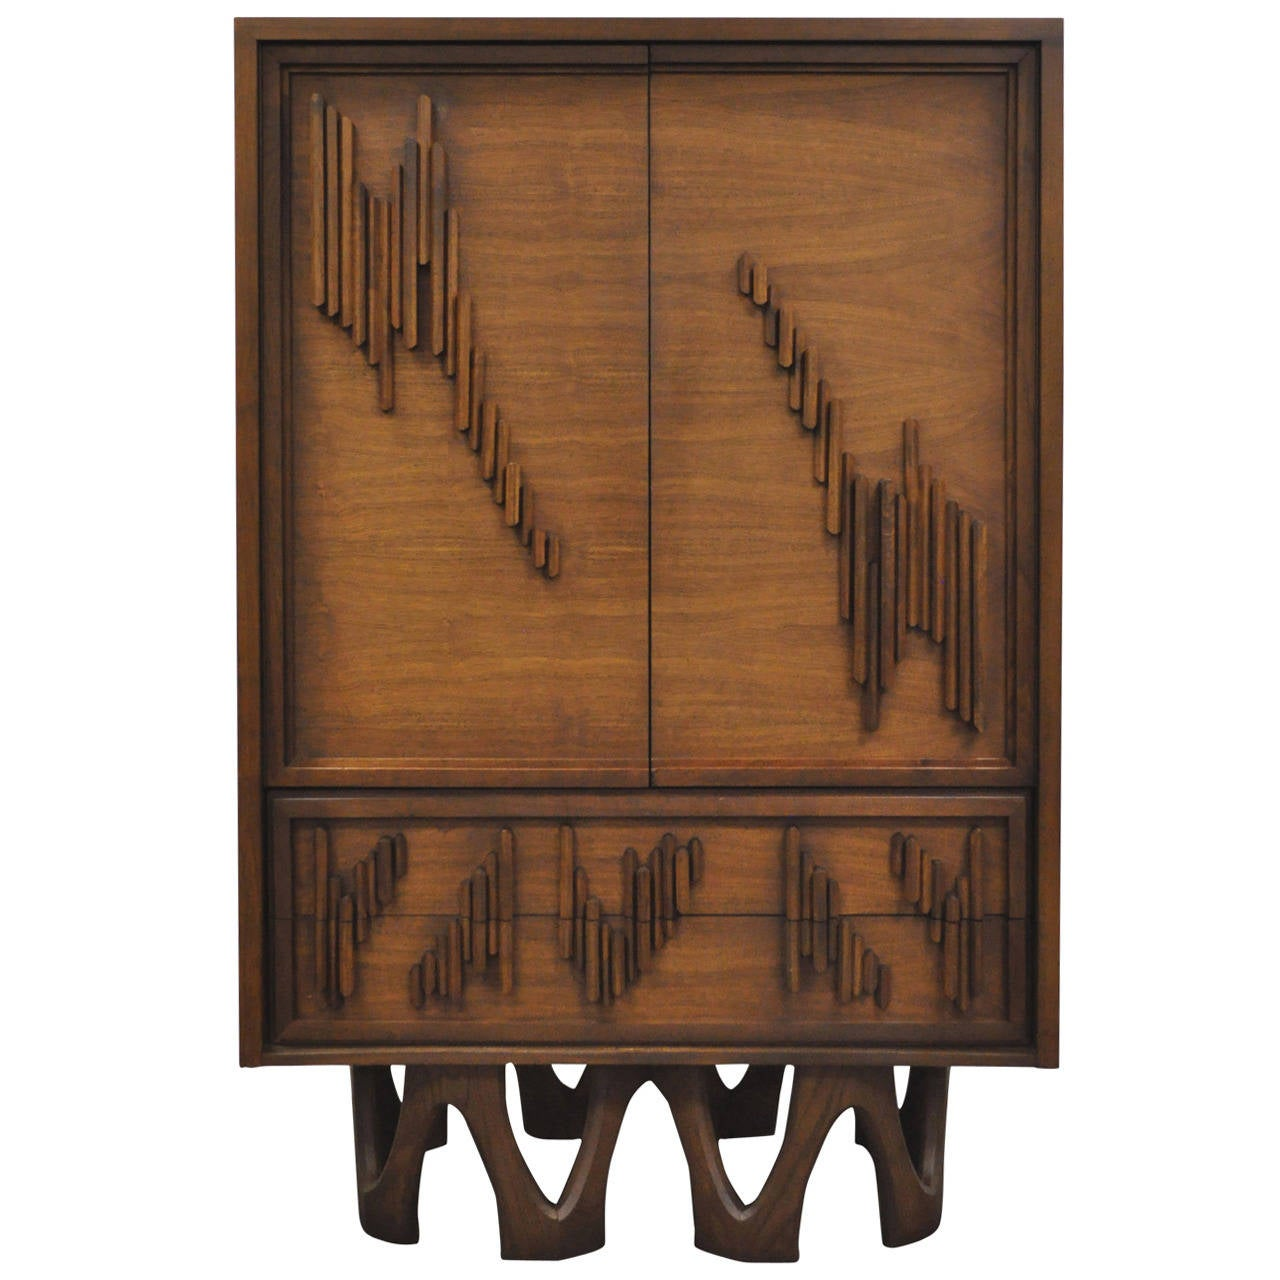 Mid Century Modern Split Level 1956 Edition Better Homes: Mid-Century Modern Brutalist Teak And Walnut Armoire Or